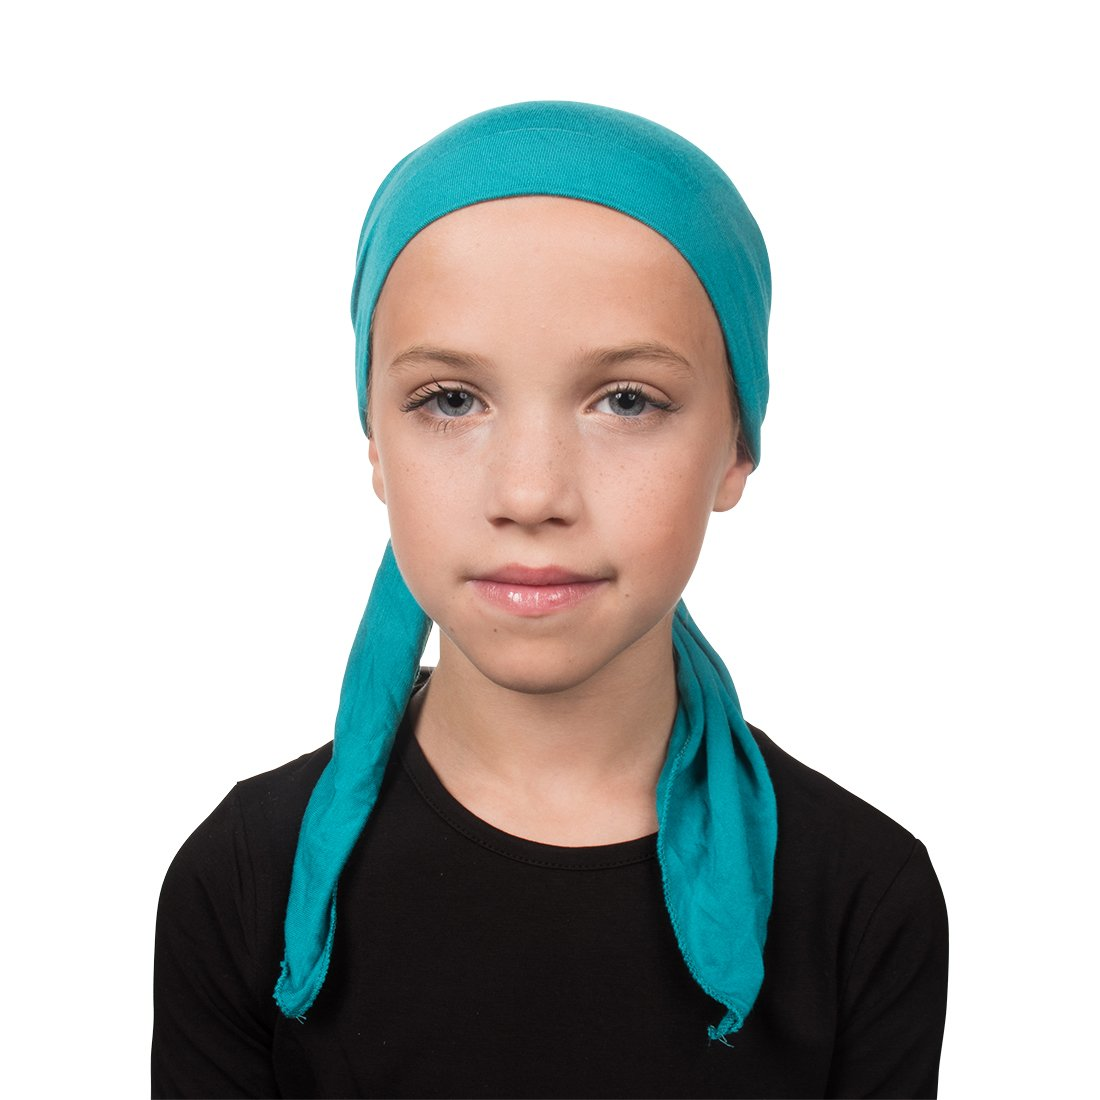 Landana Headscarves Kids Chemo Cap Pretied for Girls Soft Cancer Scarf - Turquoise